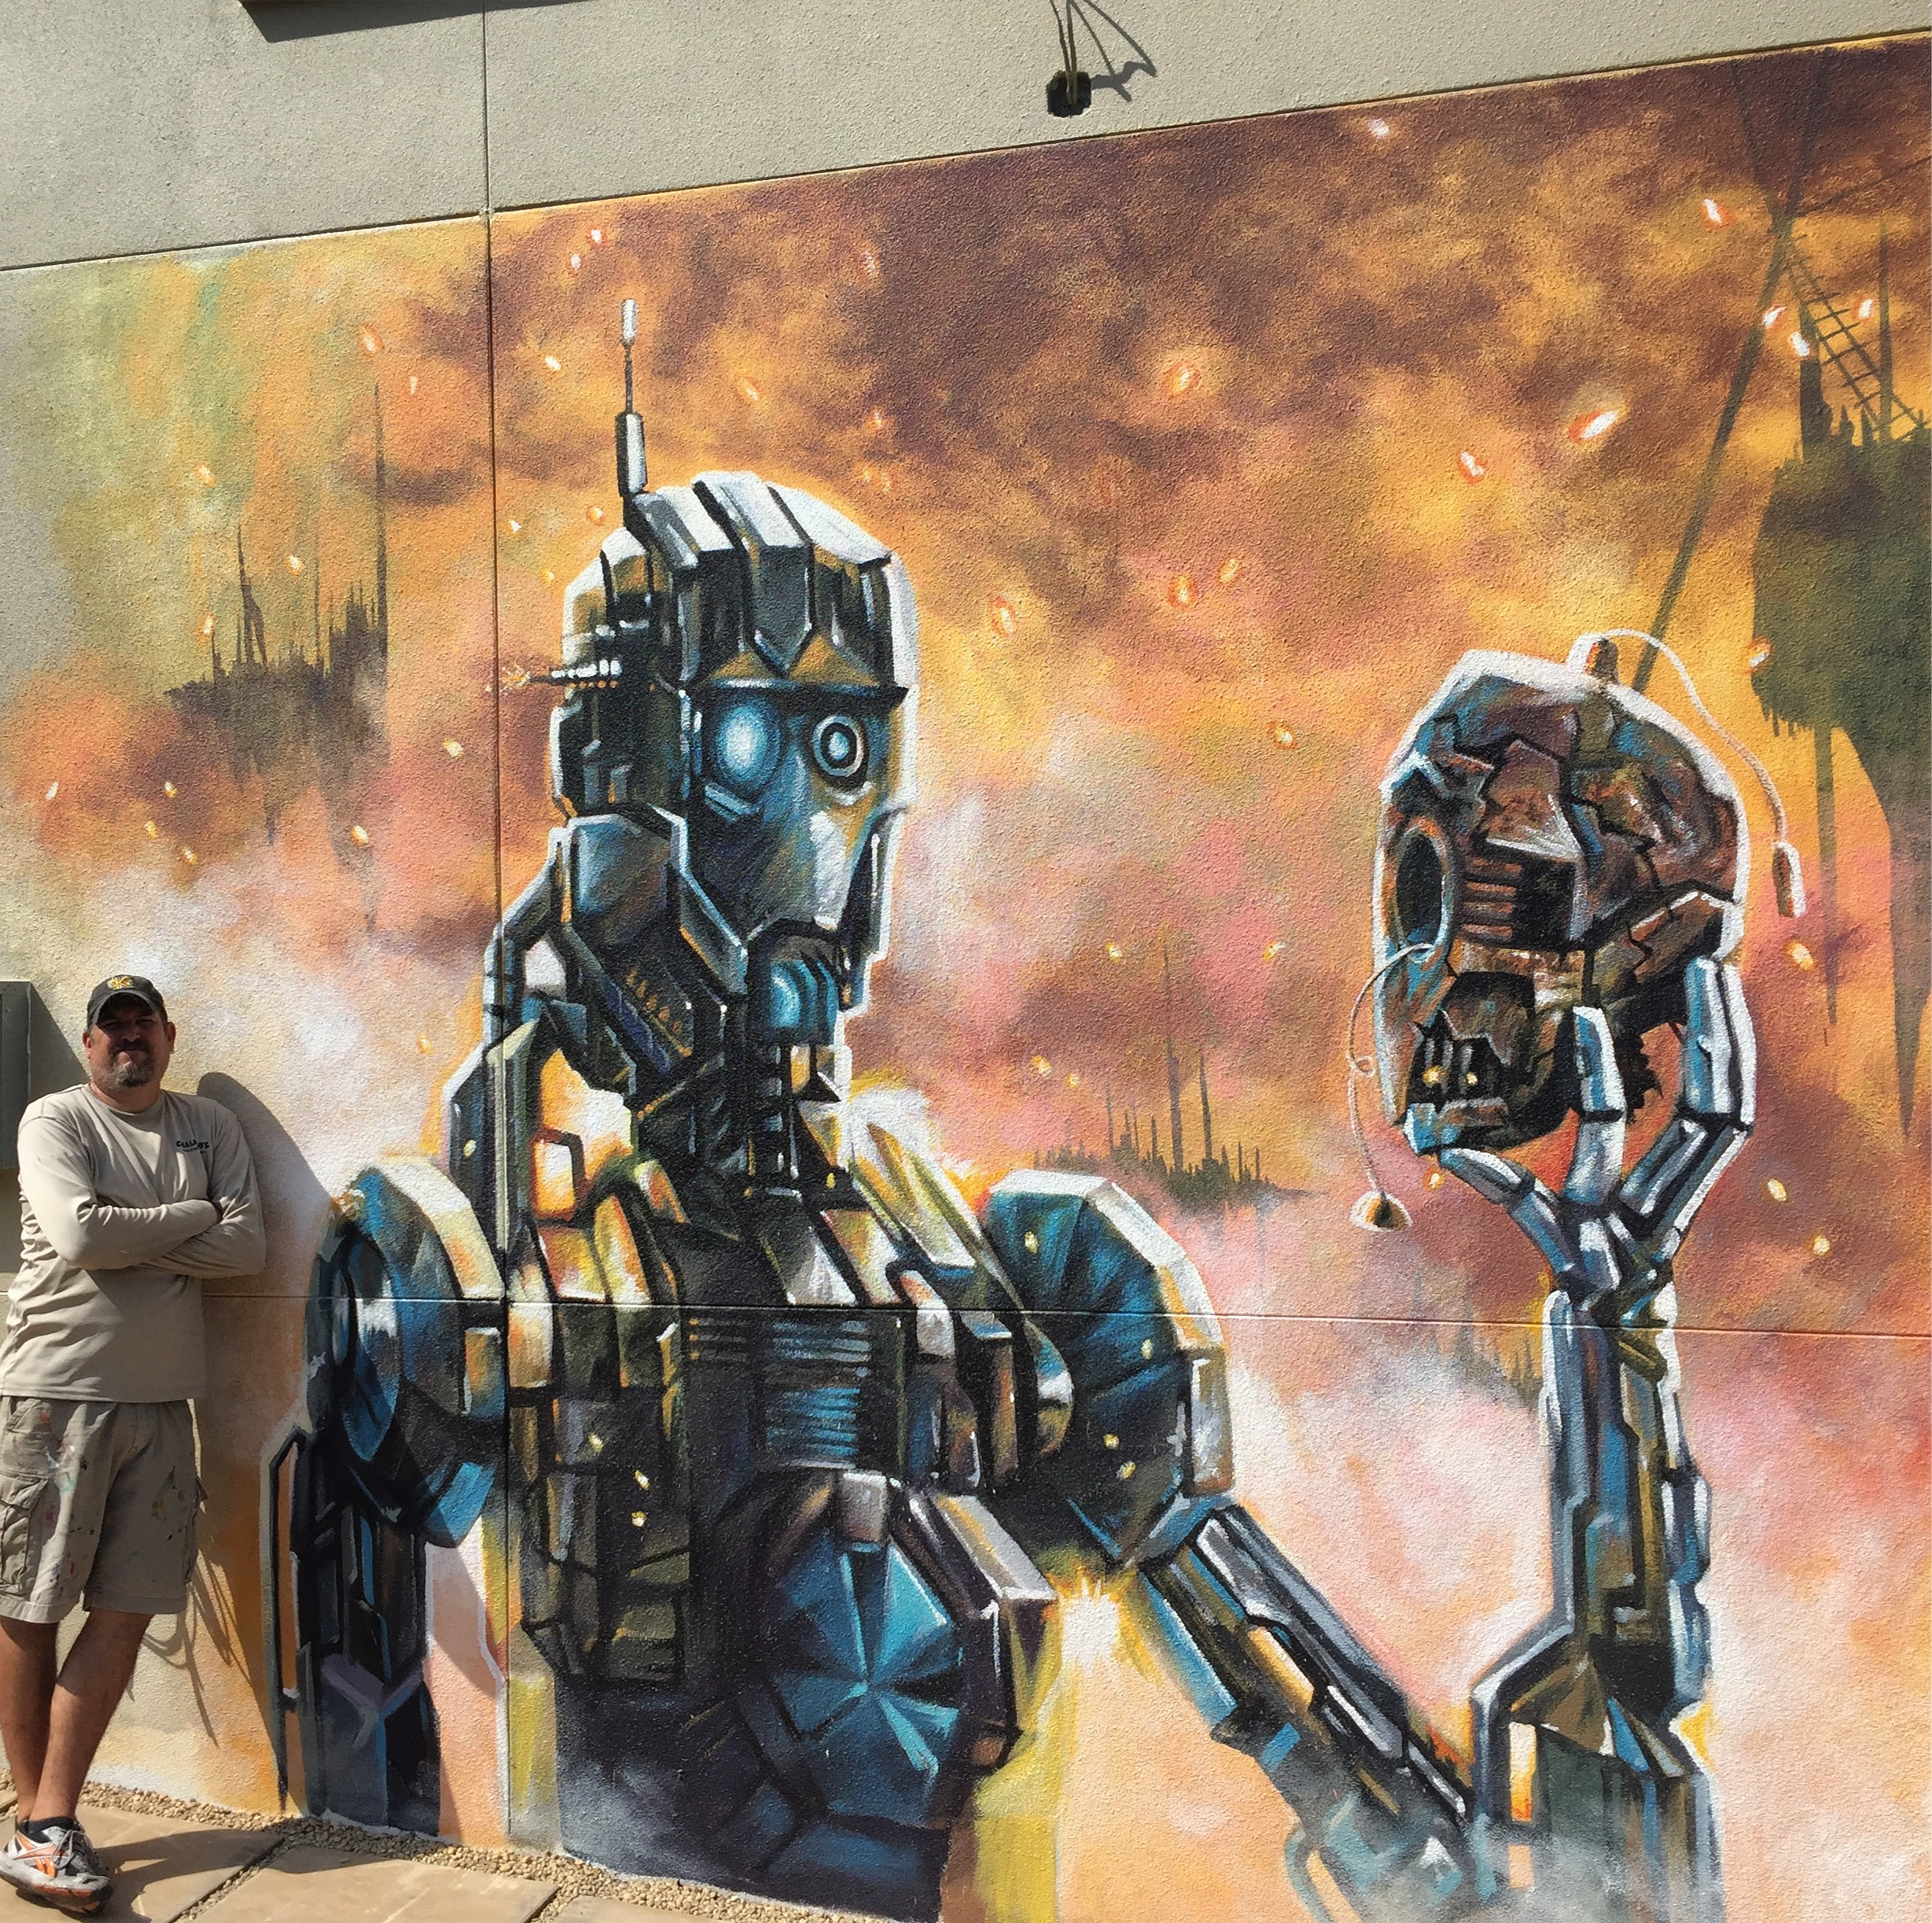 Finished Robot Hamlet picturing Hector Diaz who assisted on the project. The mural was painted on the exterior wall of the Kretzmer Building in Sarasota, FL for Florida Studio Theatre.